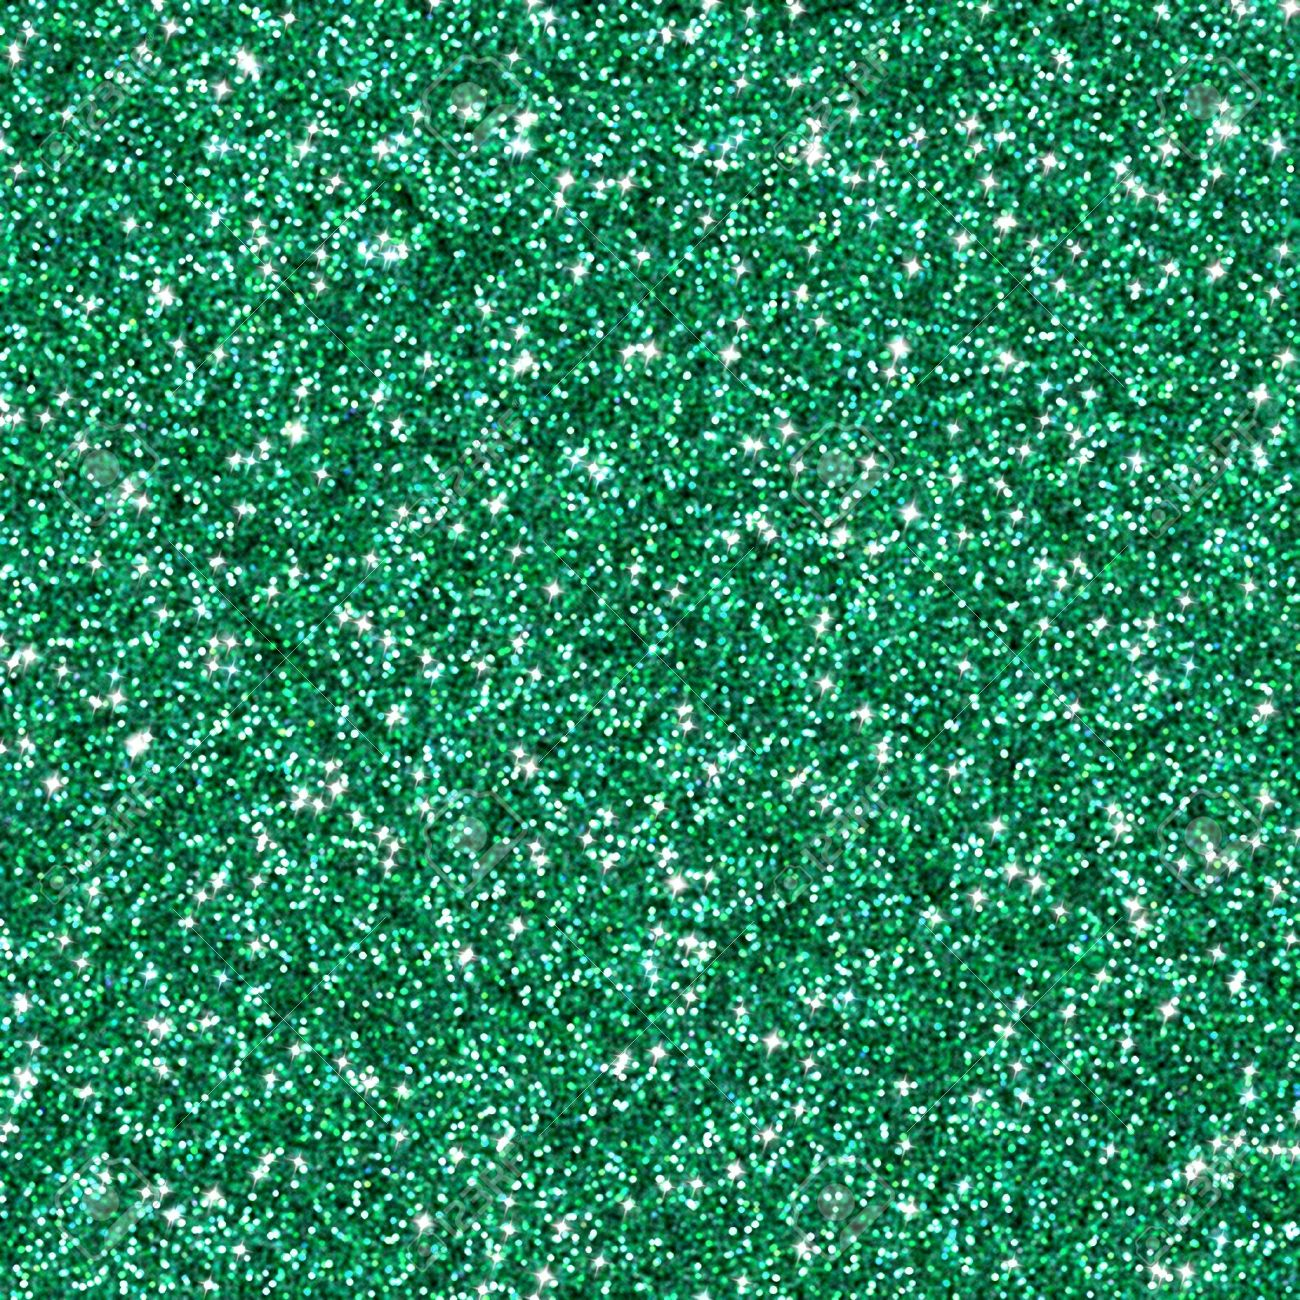 Emerald Green Glitter Texture Or Background Stock Photo Picture 1300x1300